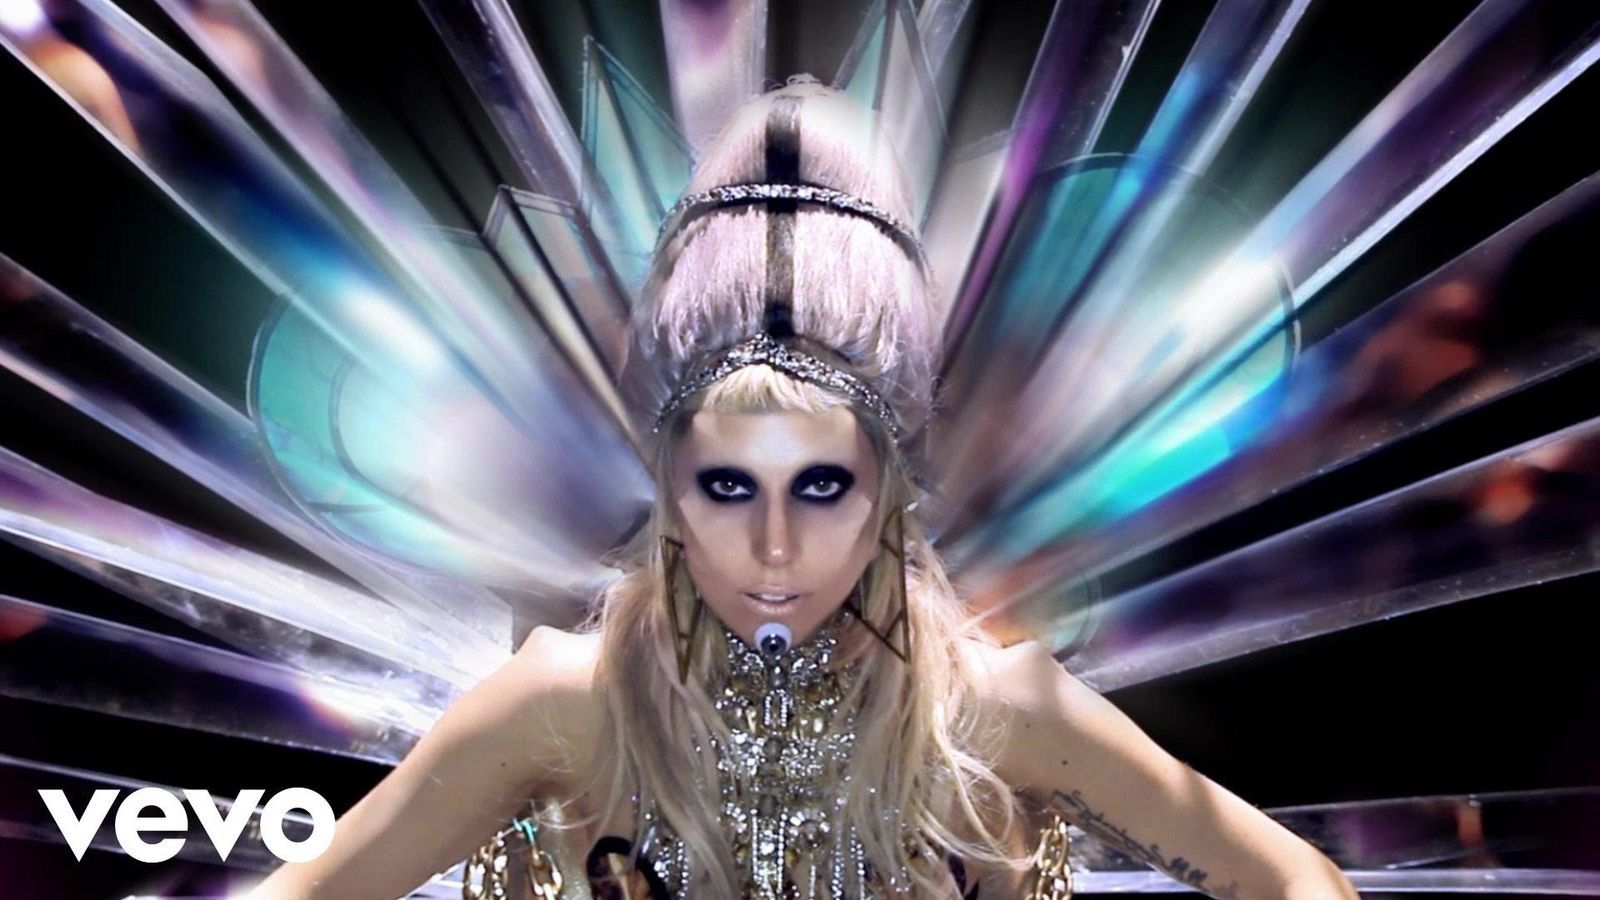 'Born this way', de Lady Gaga